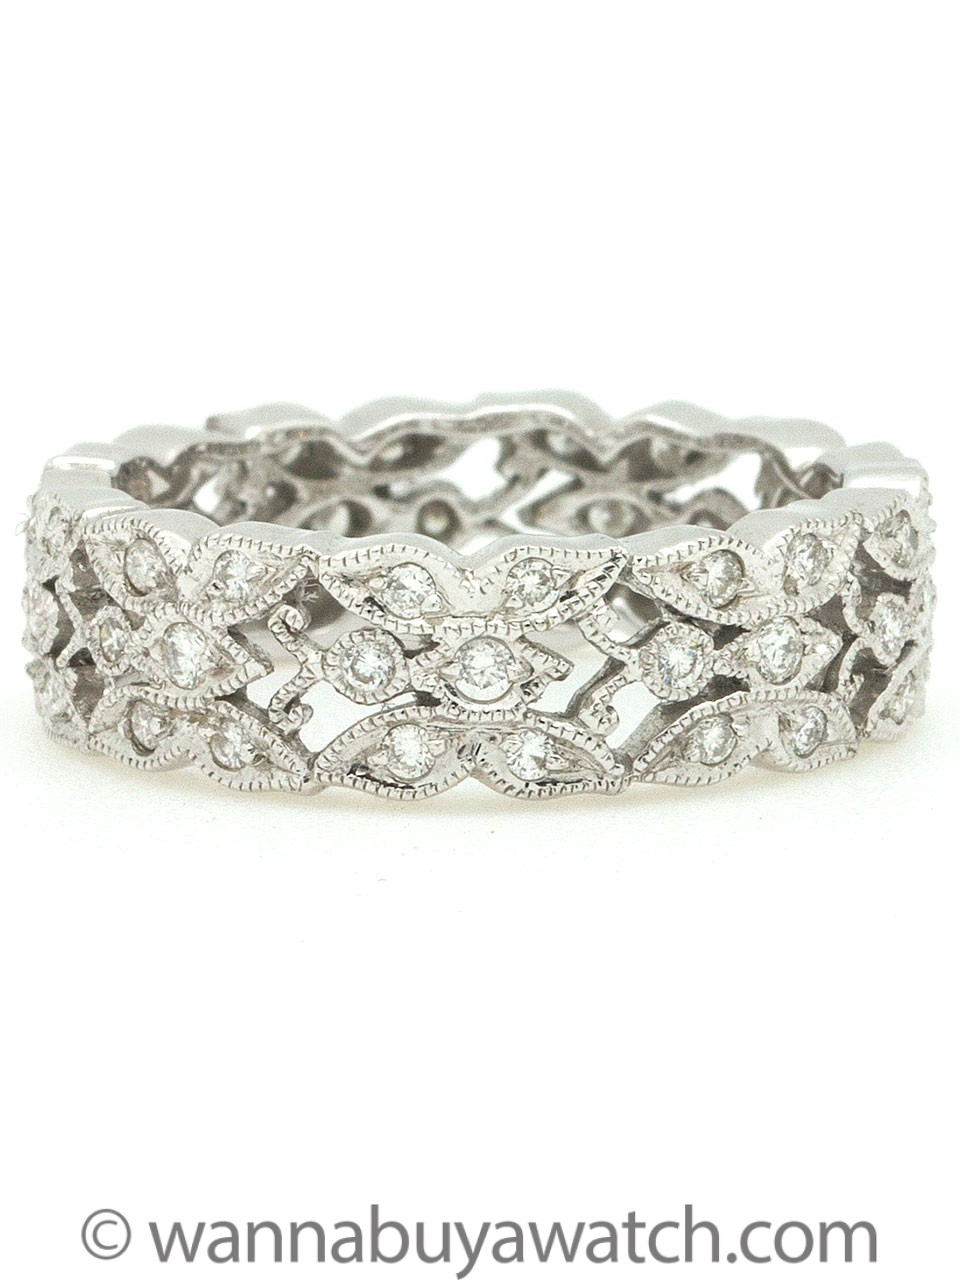 Vintage Style 18k White Gold Wide Diamond Eternity Band 0.38ct circa 2000s